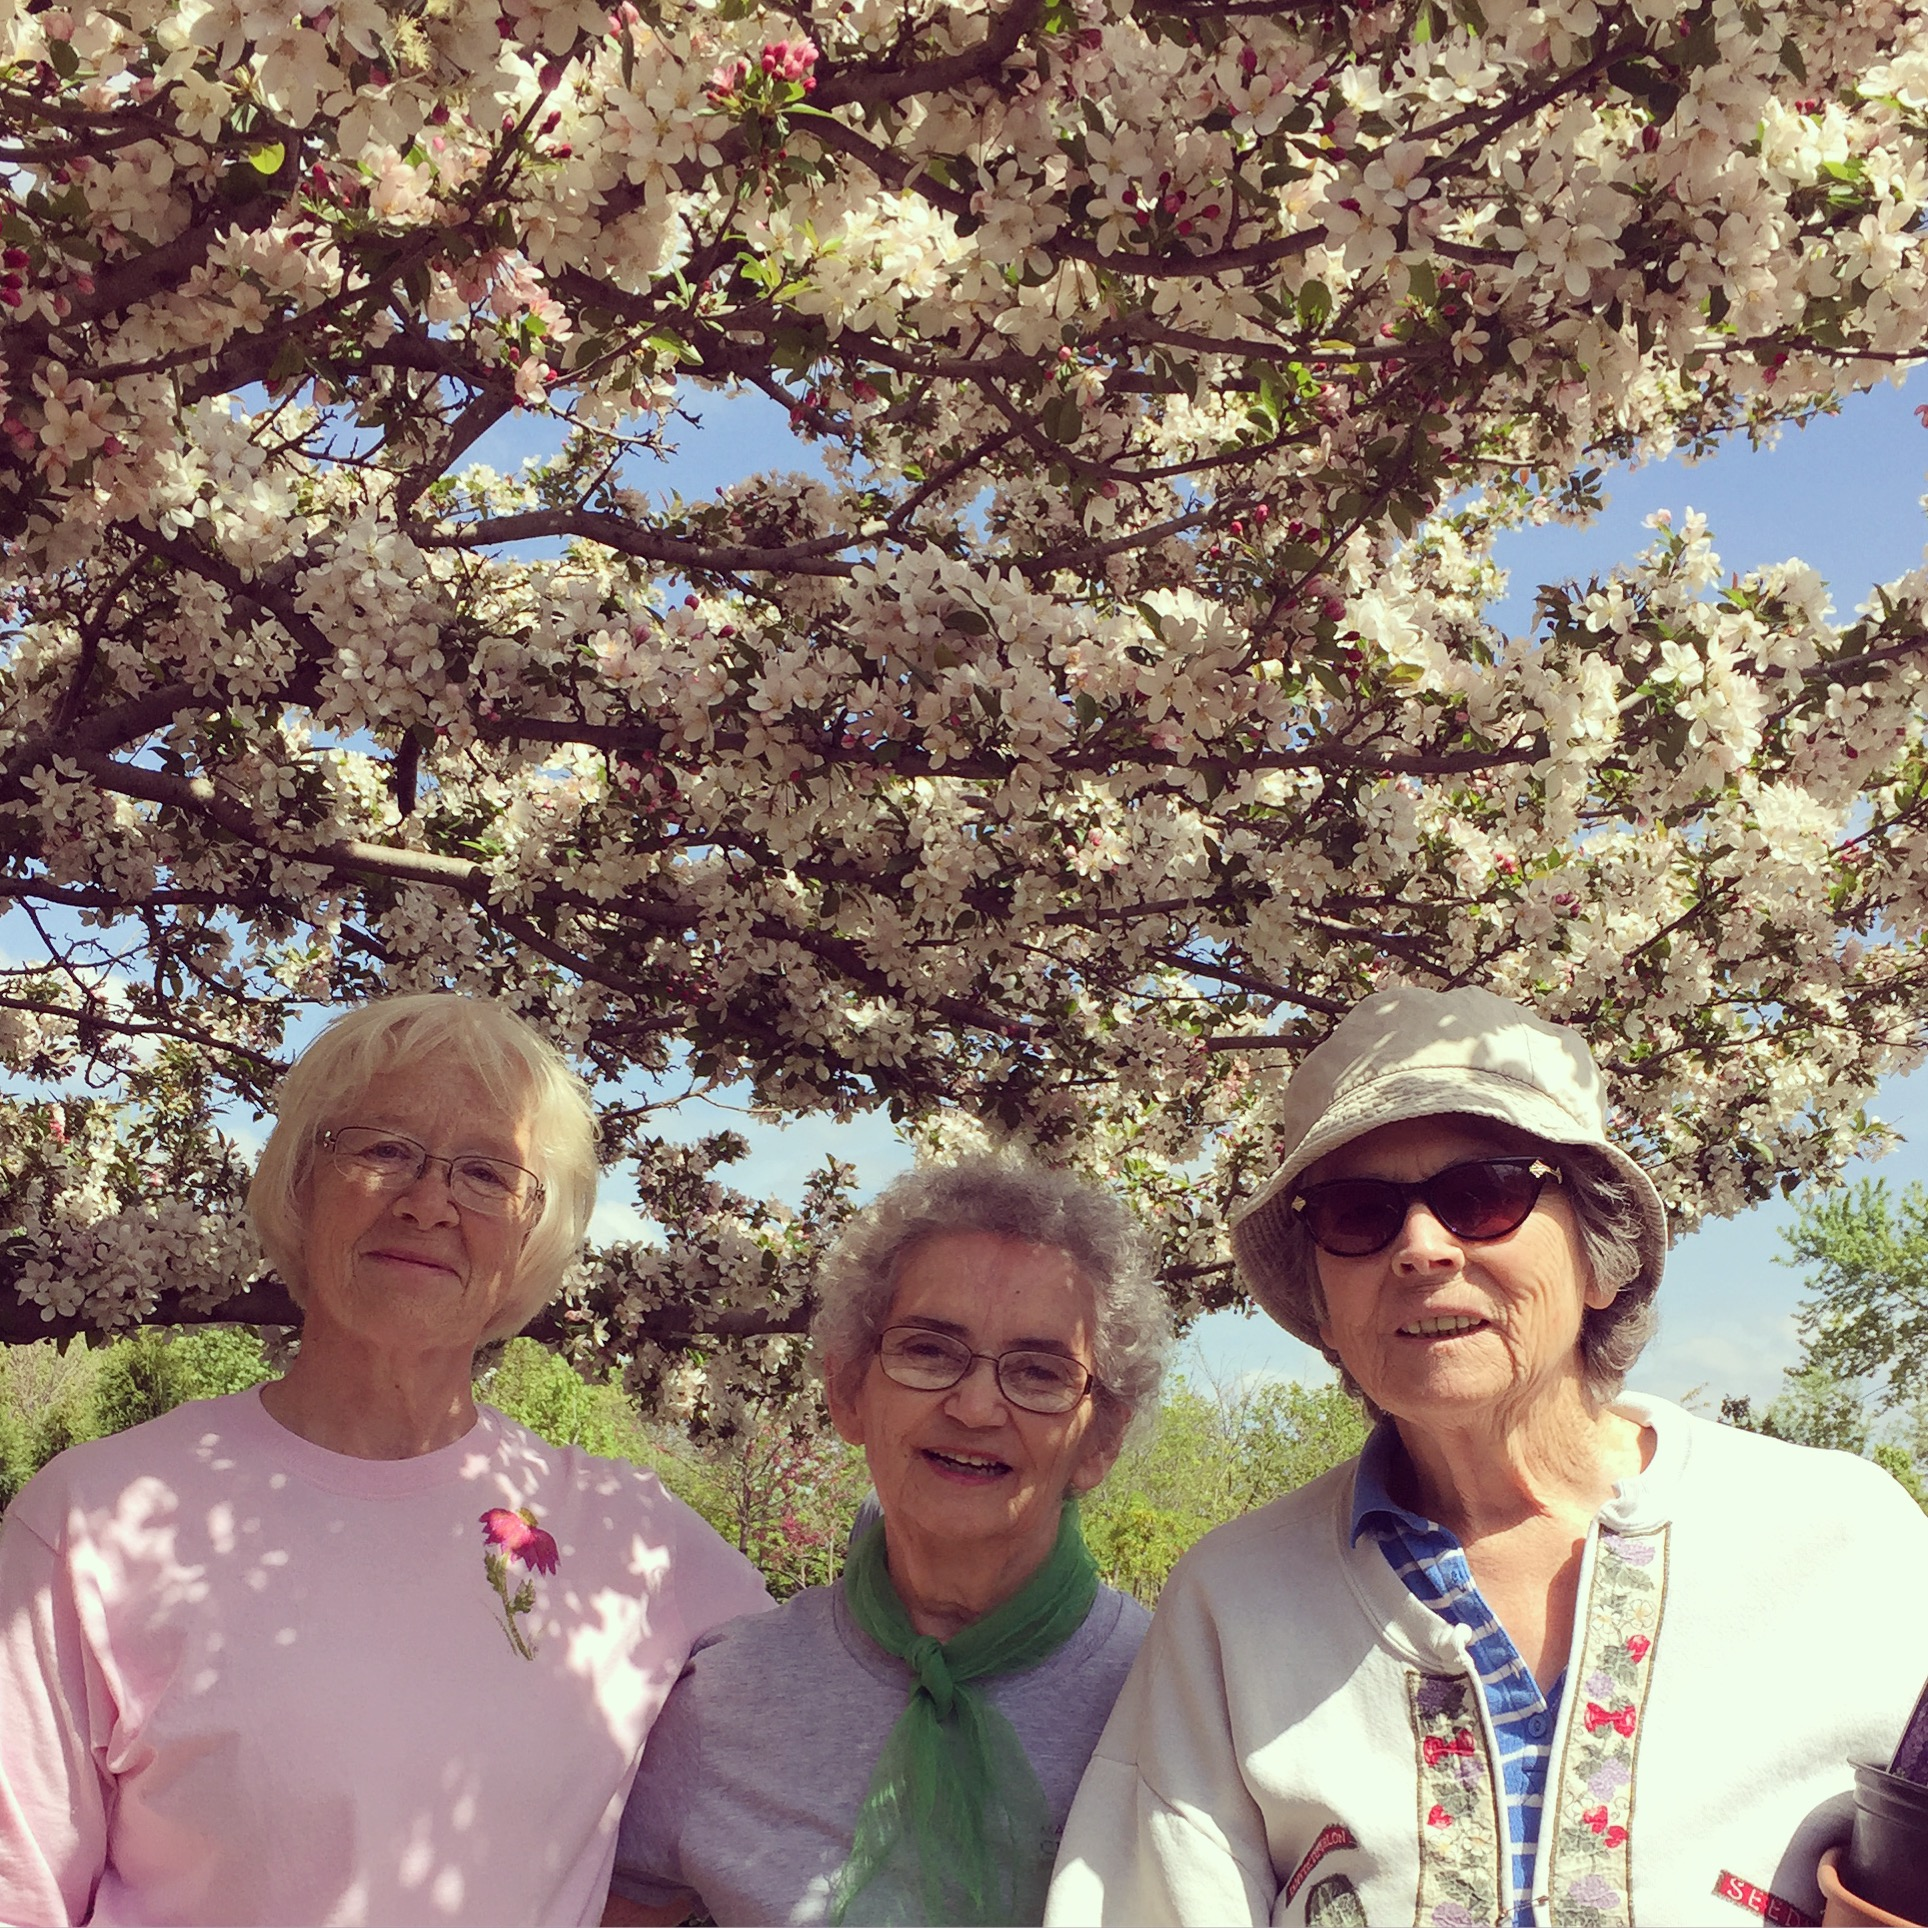 A tina crab in full bloom behind LINDA and neighbors MARY WOERNER and DONNA FURLEIGH